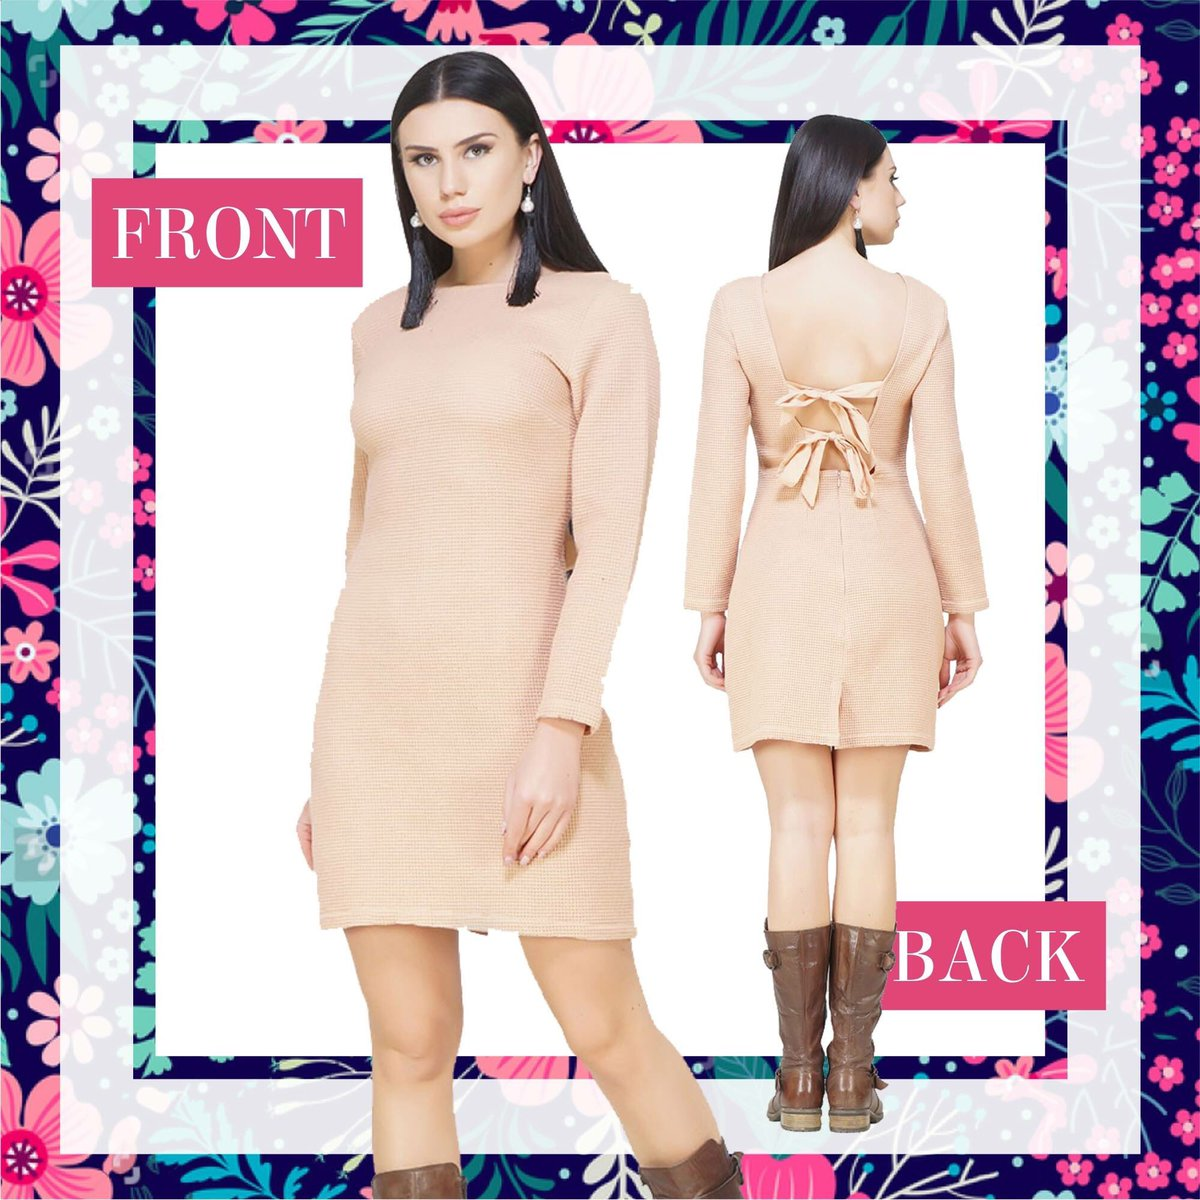 Are you date night ready? Tie Me A Knot Nude Dress. Shop now at http://www.sexyandbroke.com  #MiniDress #OOTD #SexyBack #DateNight #SexyitUp #Glam #Chic #Trending #CelebStyle #HotFashion #LatestFashion #SexyandBroke #OnlineShopping #LookAwesome